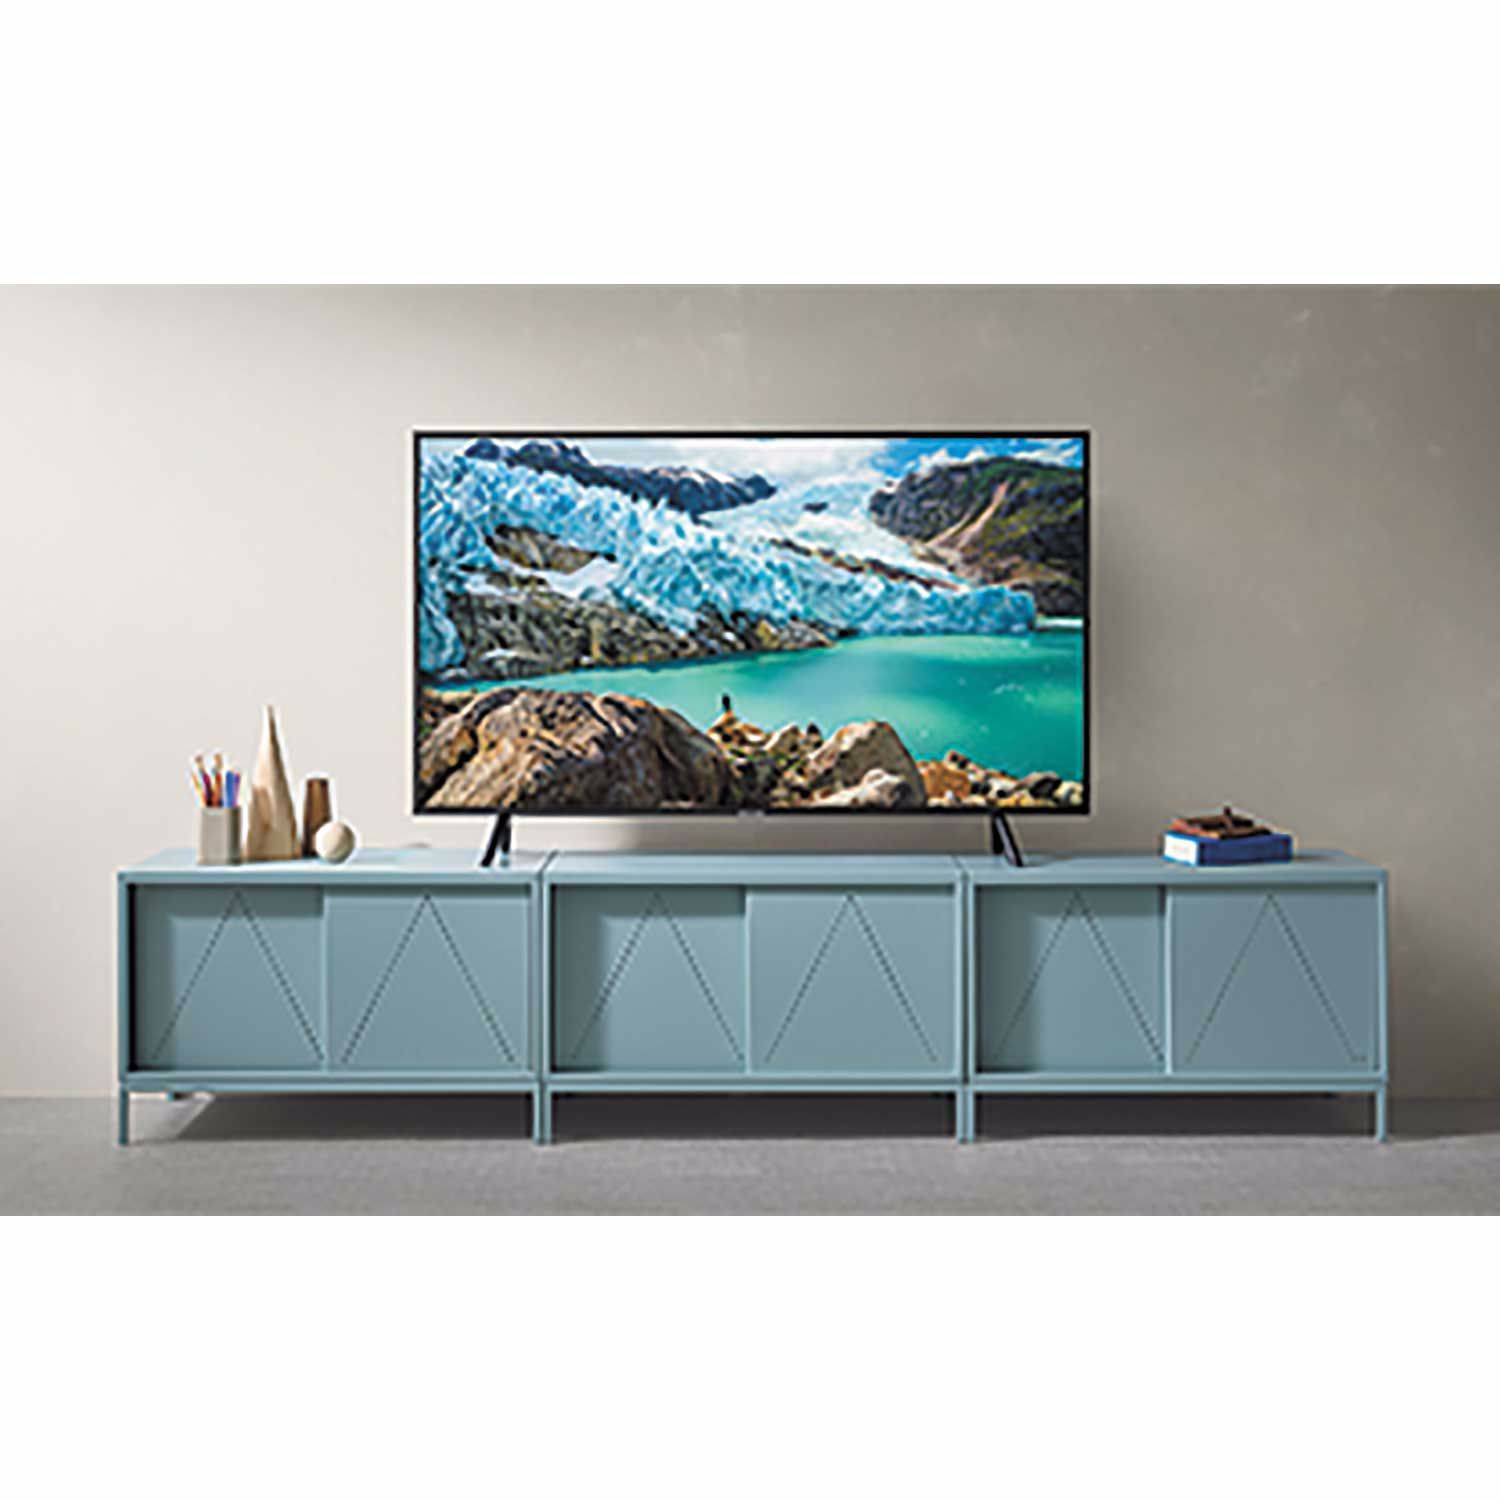 Picture of Samsung 55-Inch Class 4K Ultra HD (2160p) Smart LED TV